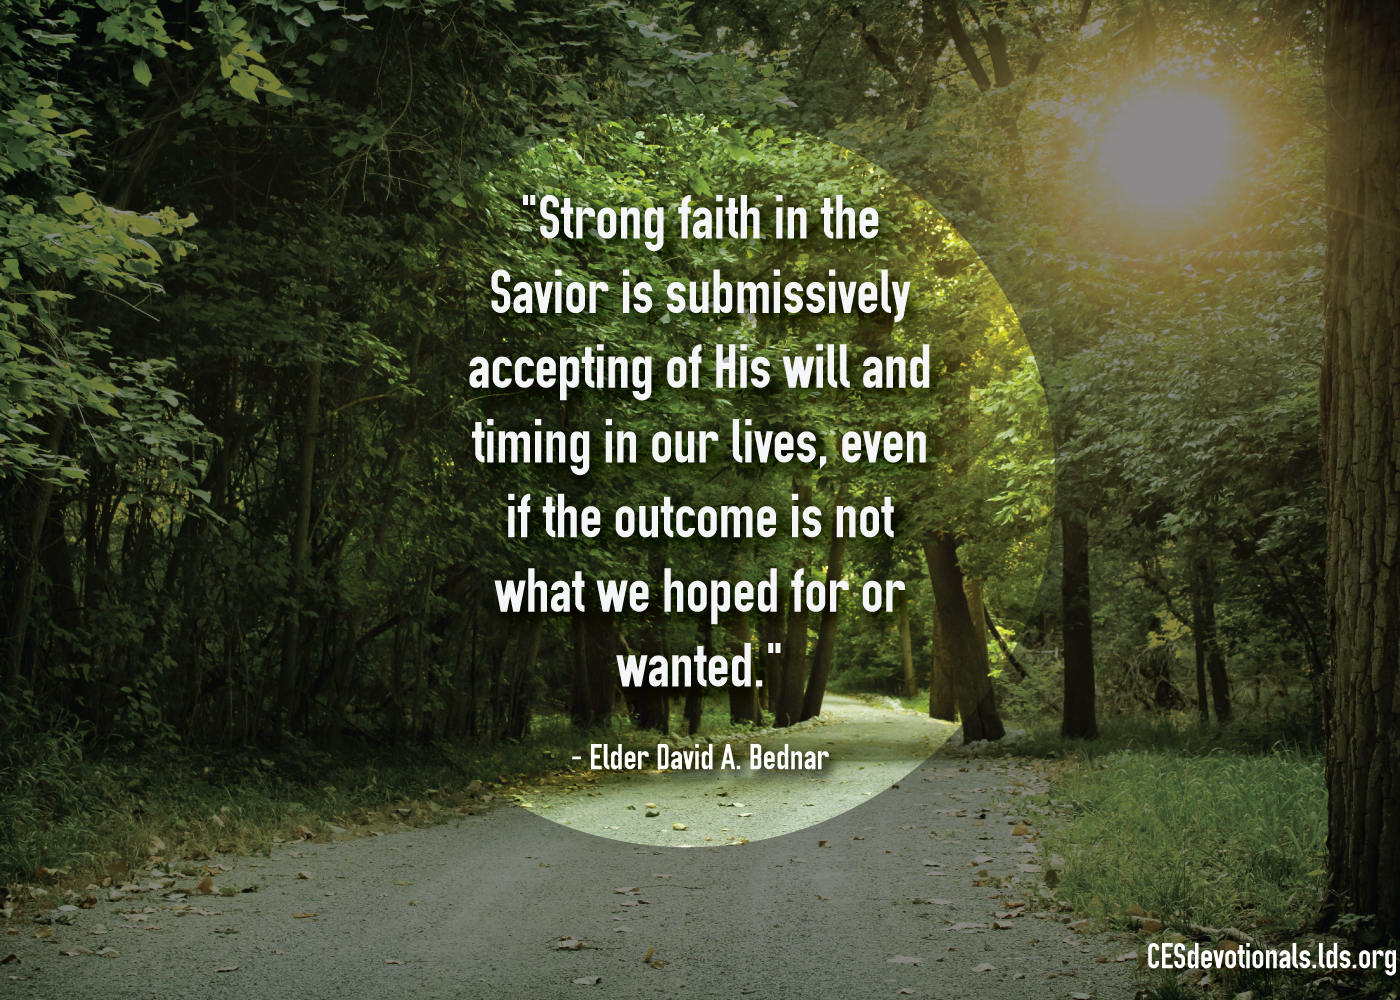 """Elder David A. Bednar quote, ""Strong faith in the Savior is submissively accepting of His will and timing in our lives, even if the outcome is not what we hoped for or wanted"""